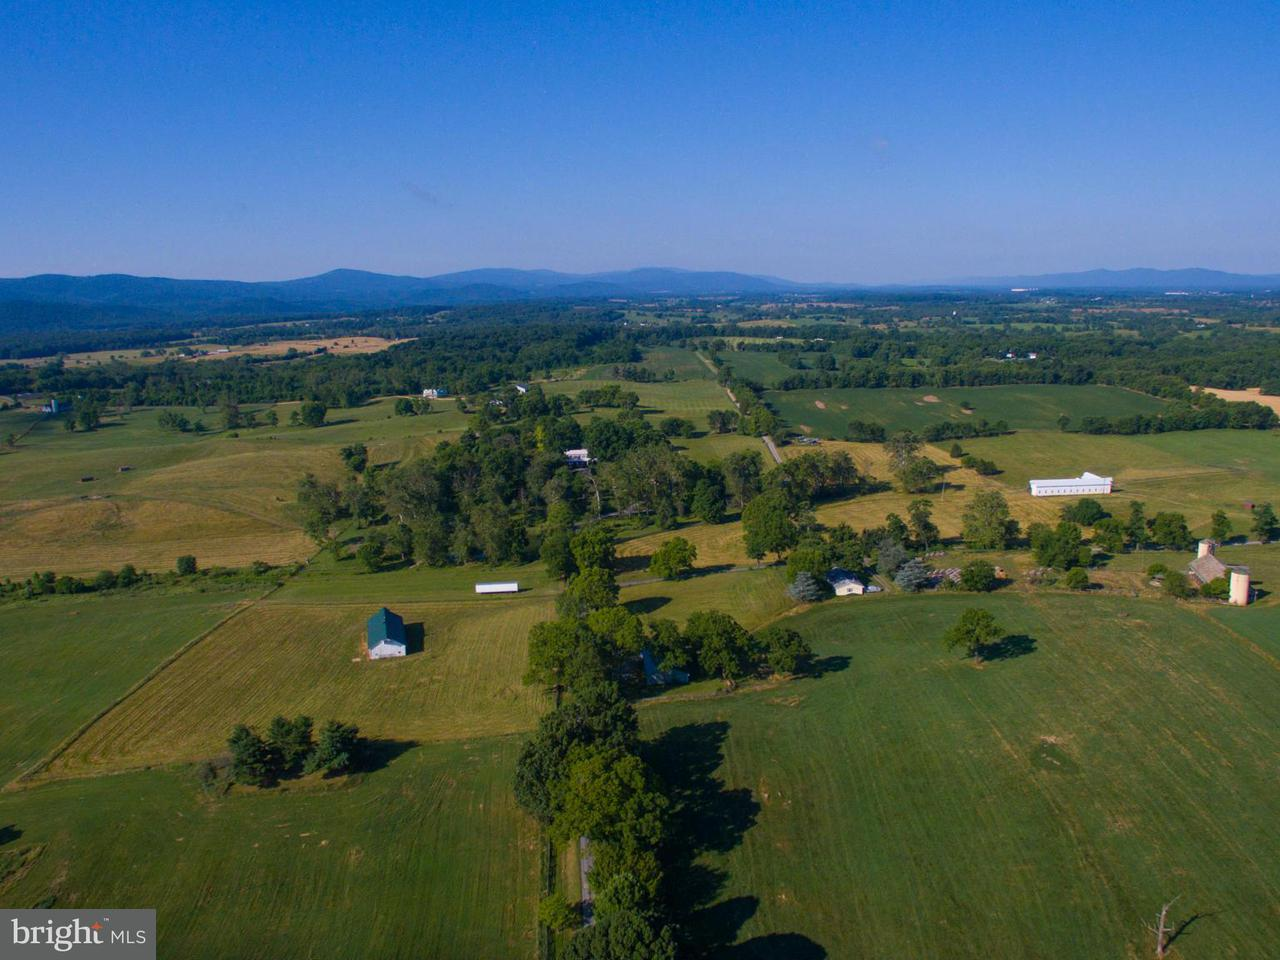 Farm for Sale at 466 MONTANA HALL LN S 466 MONTANA HALL LN S White Post, Virginia 22663 United States